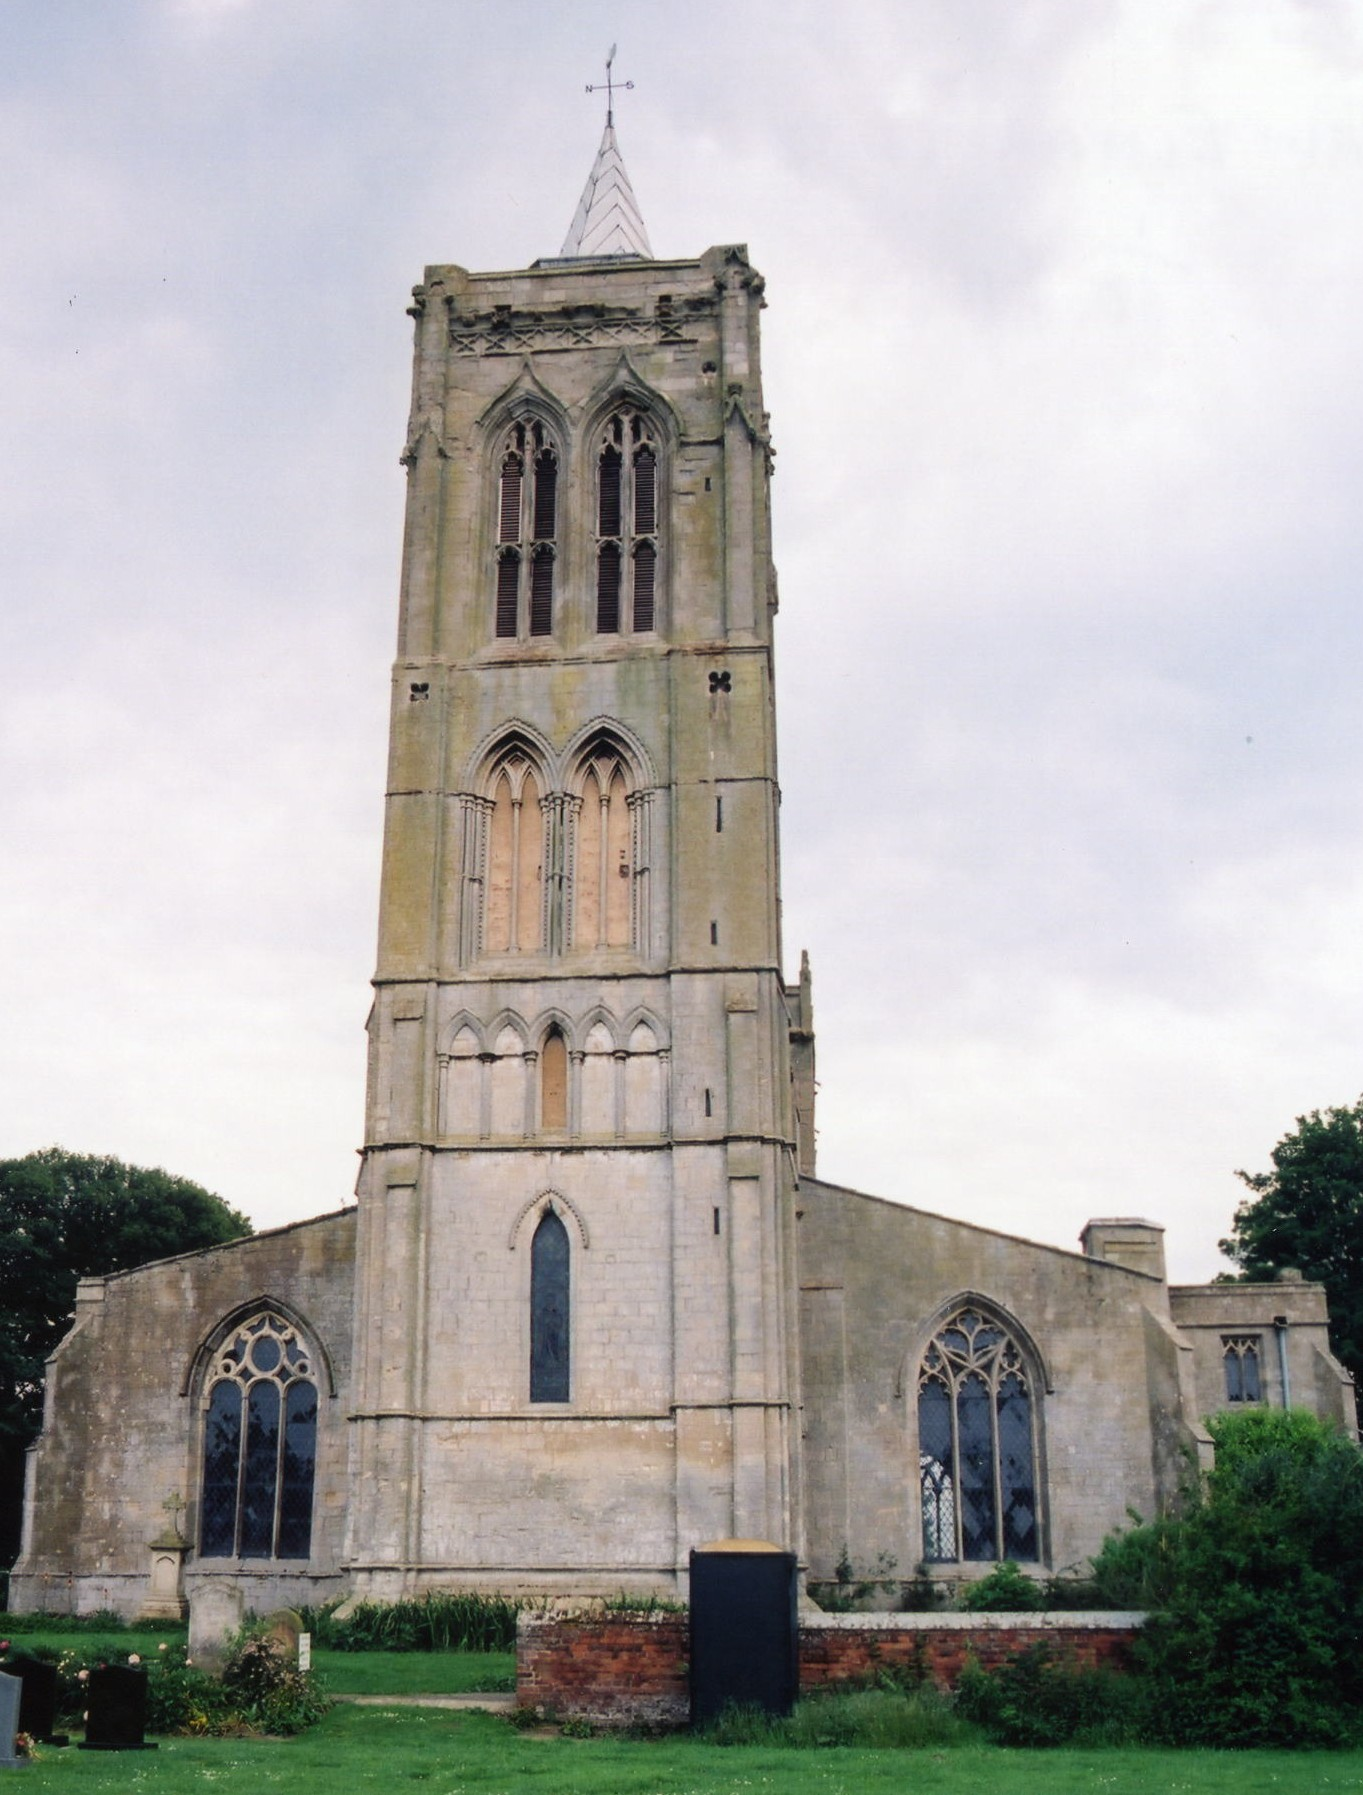 St. Mary Magdalen tower